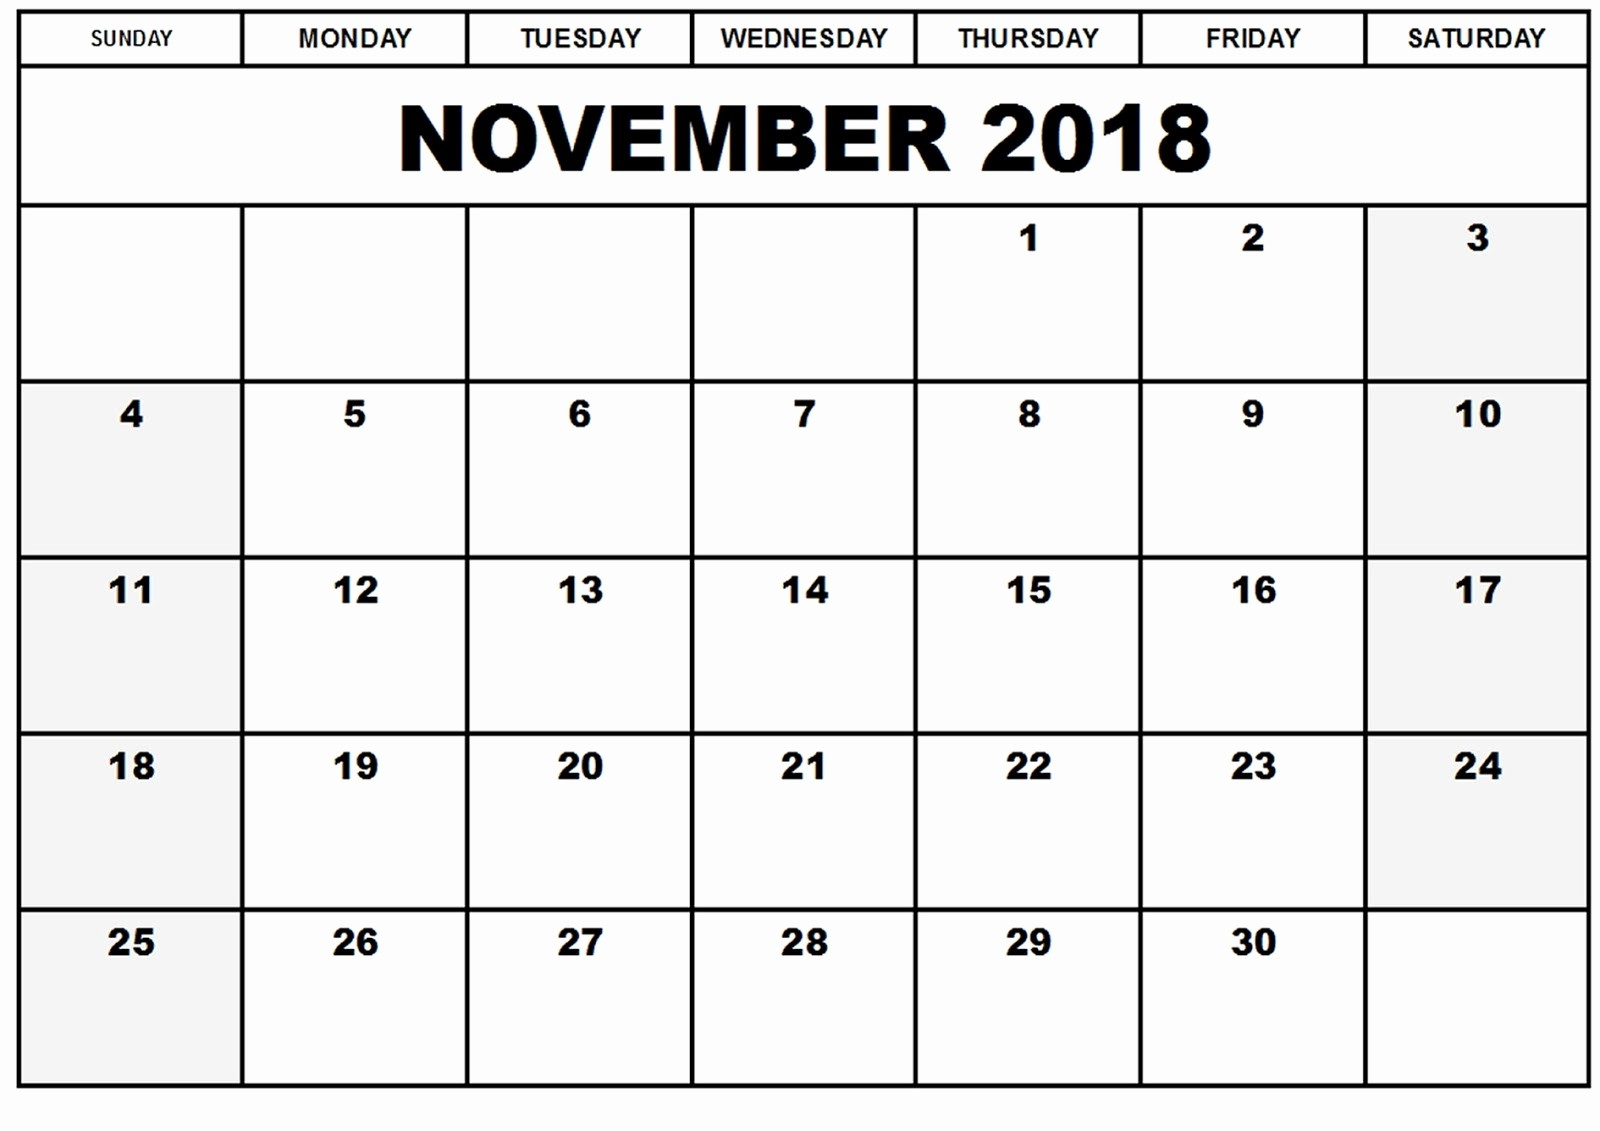 2018 Month by Month Calendar Unique November 2018 Calendar Template